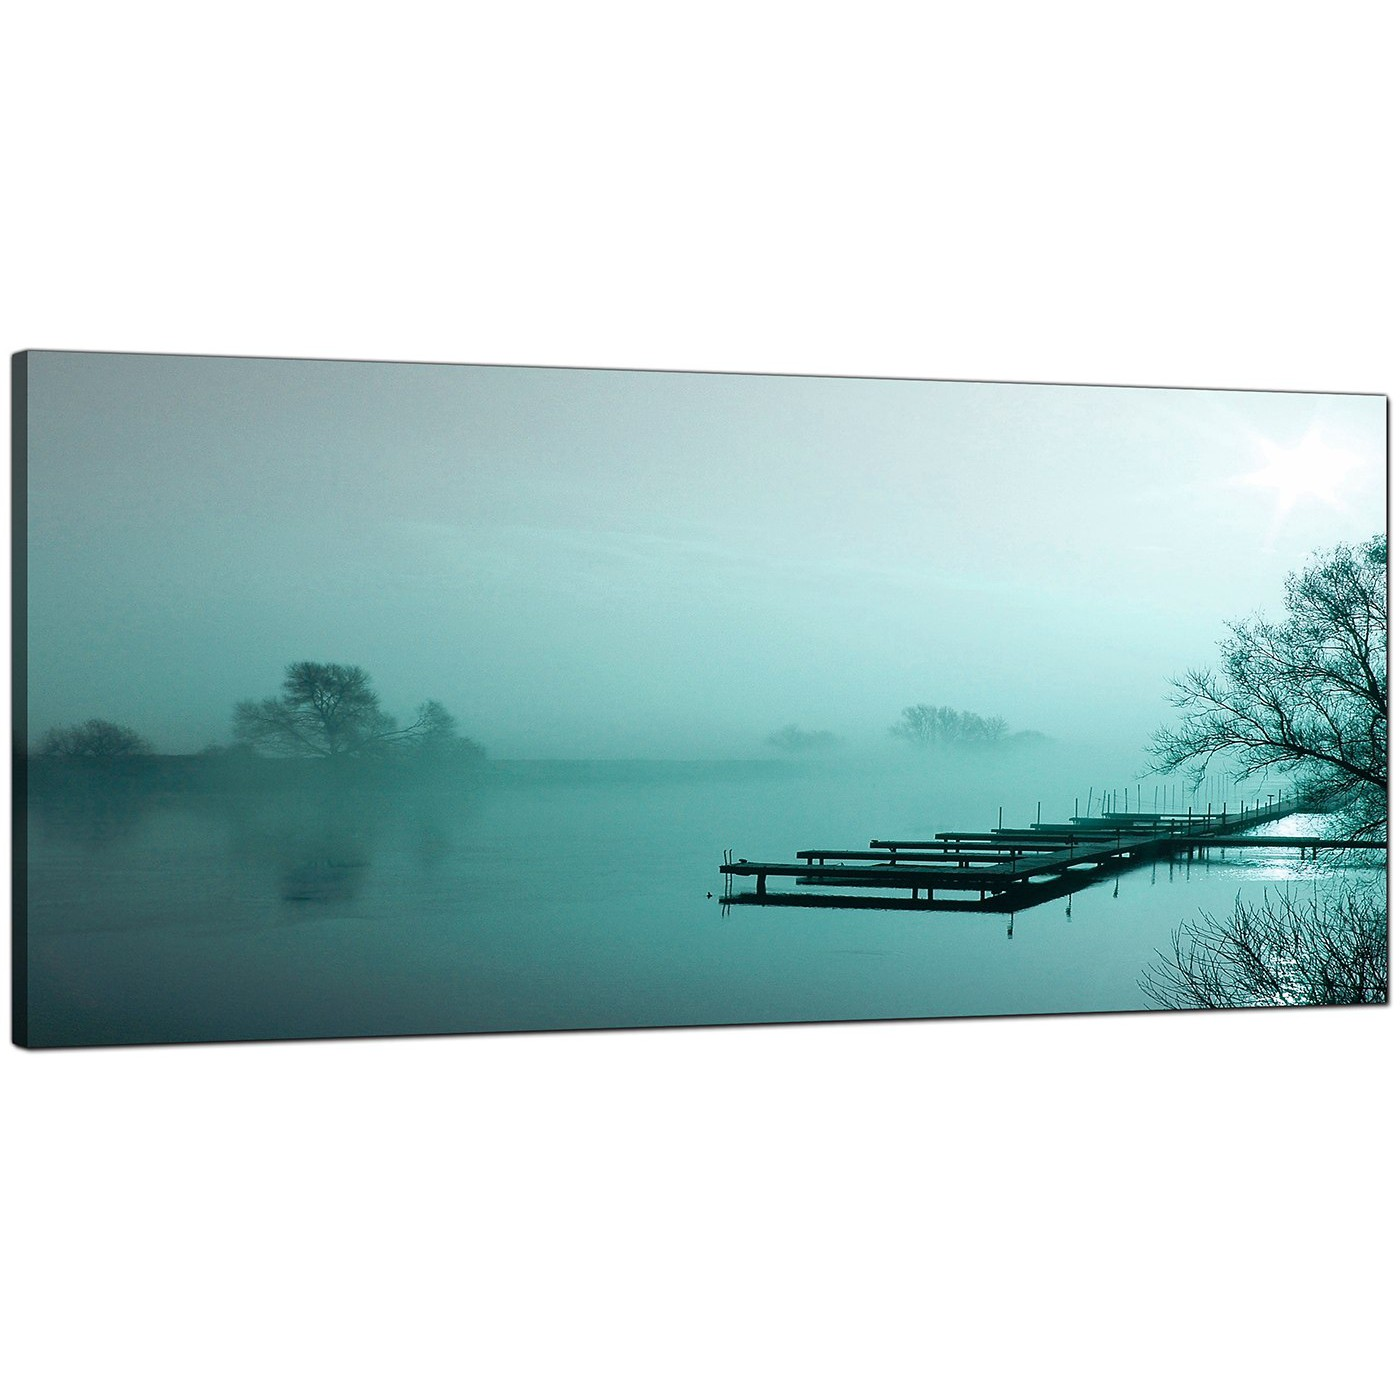 Large Teal Canvas Art Of A River Landscape